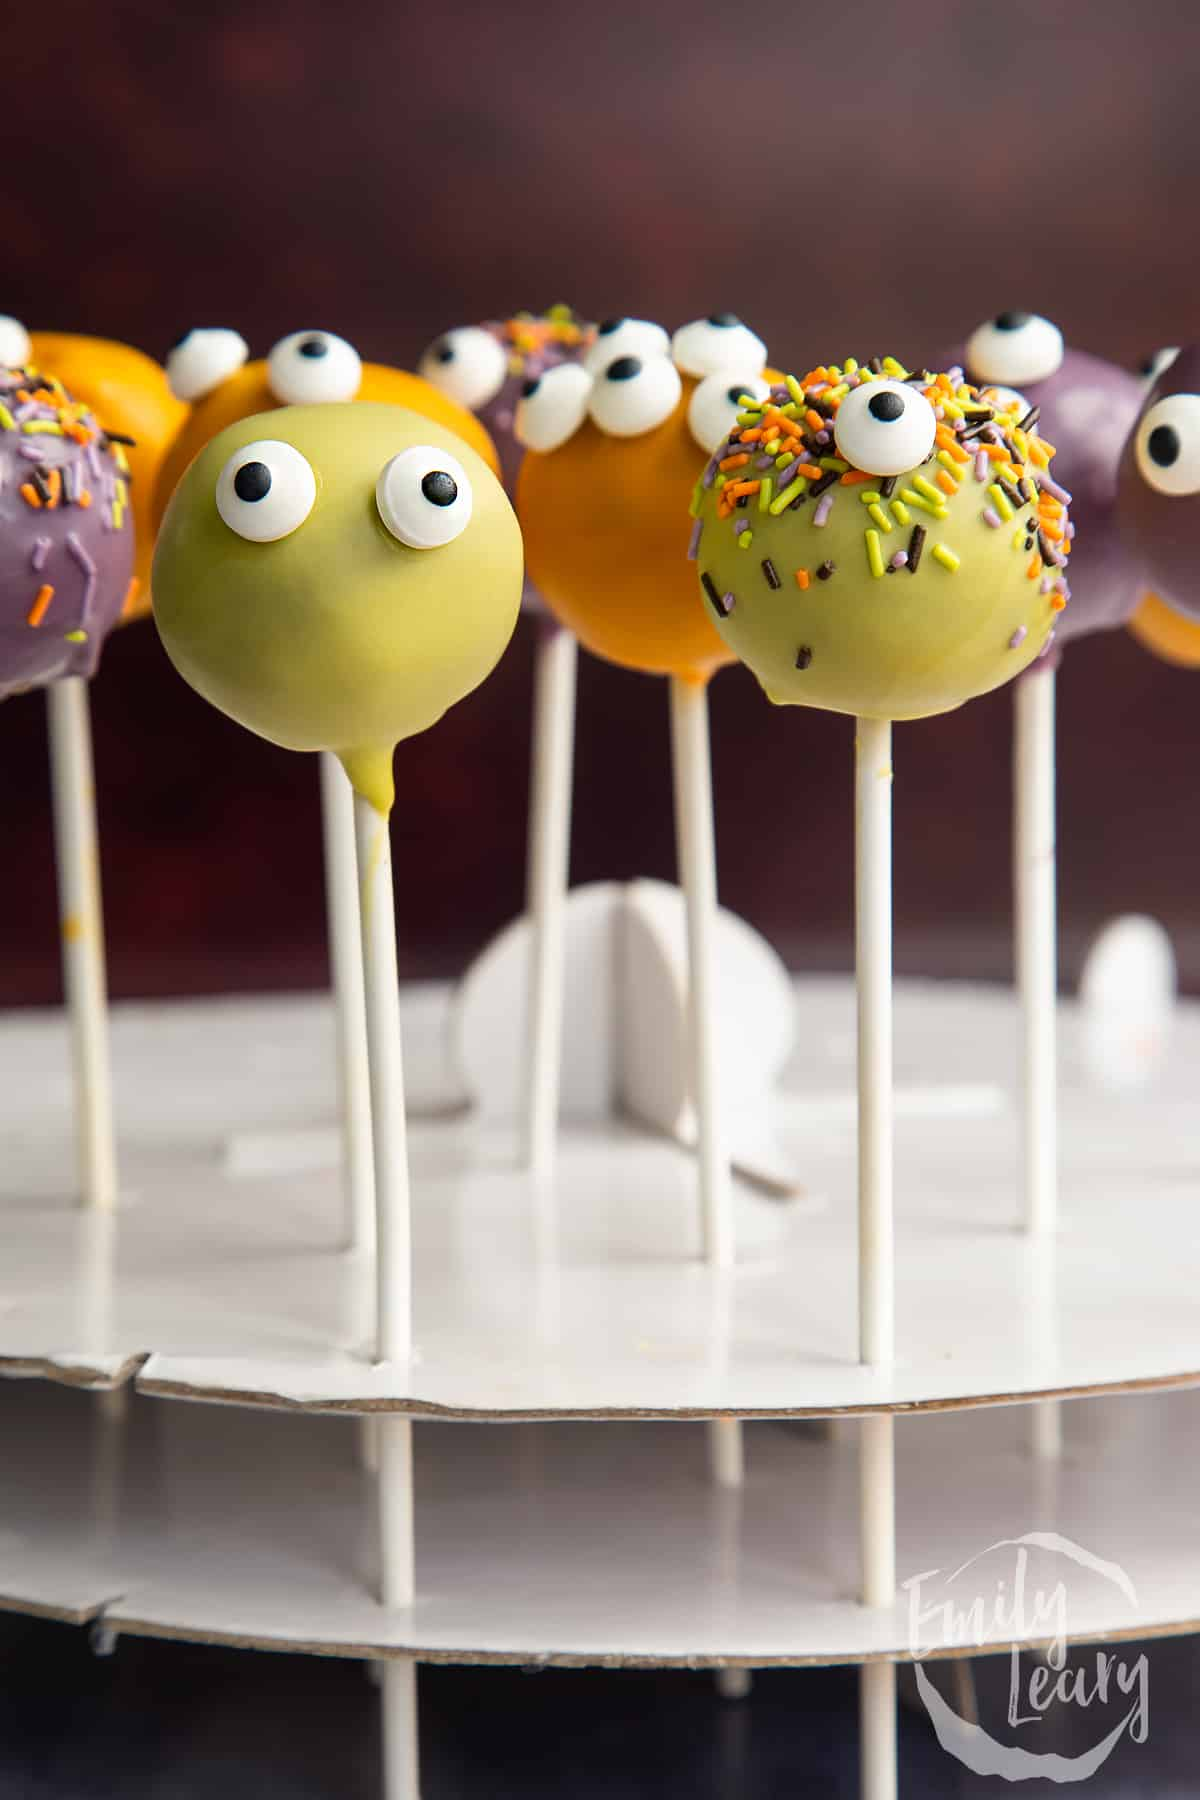 Halloween cake pops standing in a white cardboard cake pop stand.